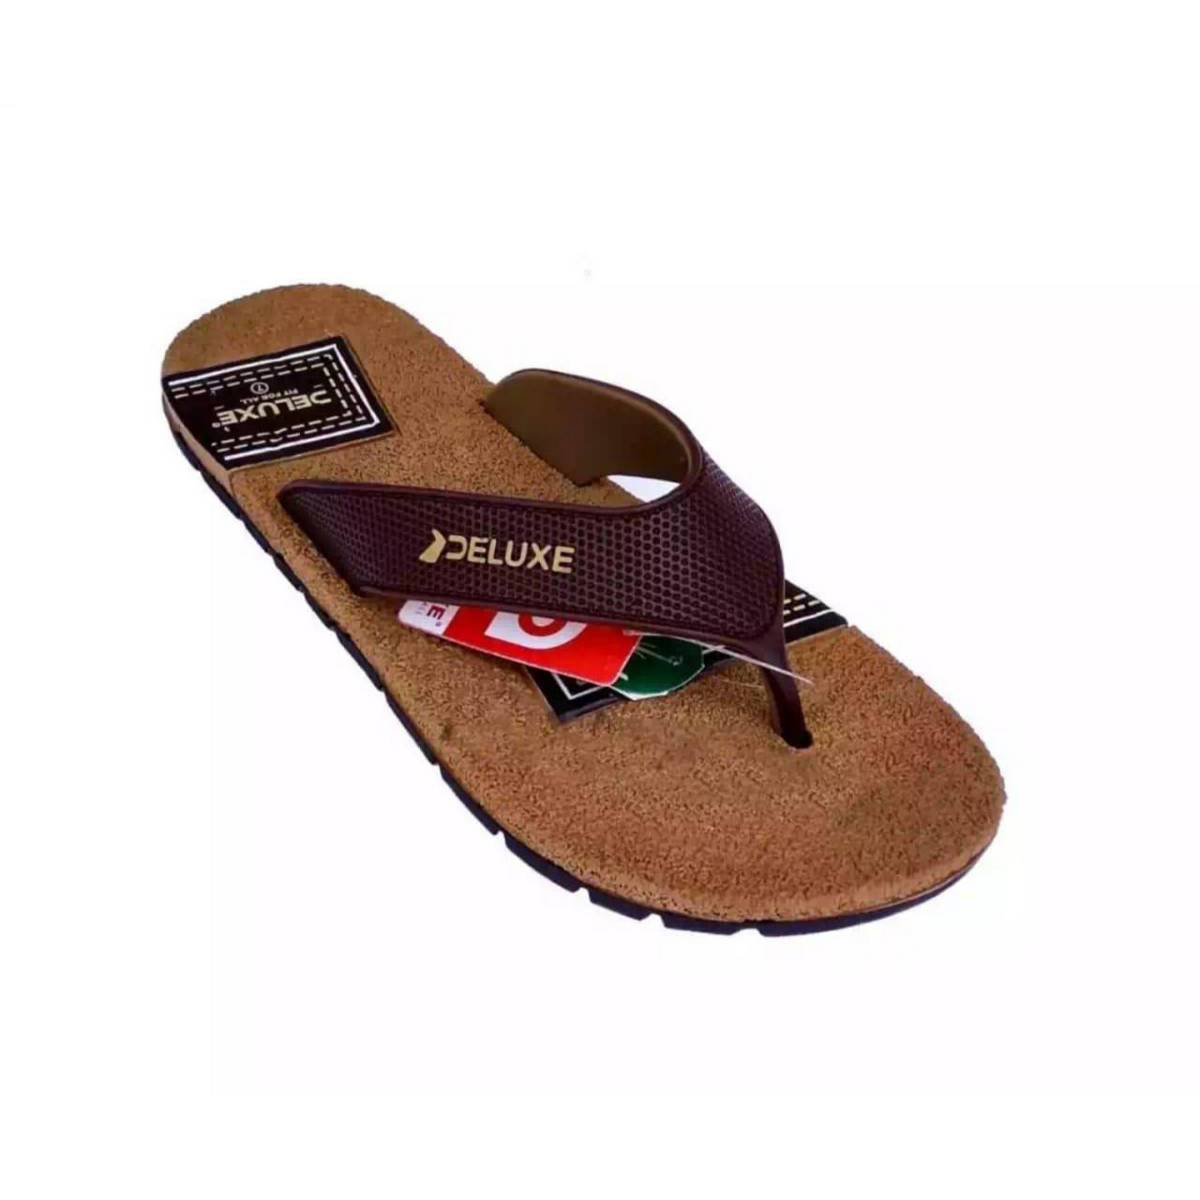 DELUXE CASUAL CHAPPAL FOR MEN FLIPFLOP BROWN WITH LATEST DESIGN